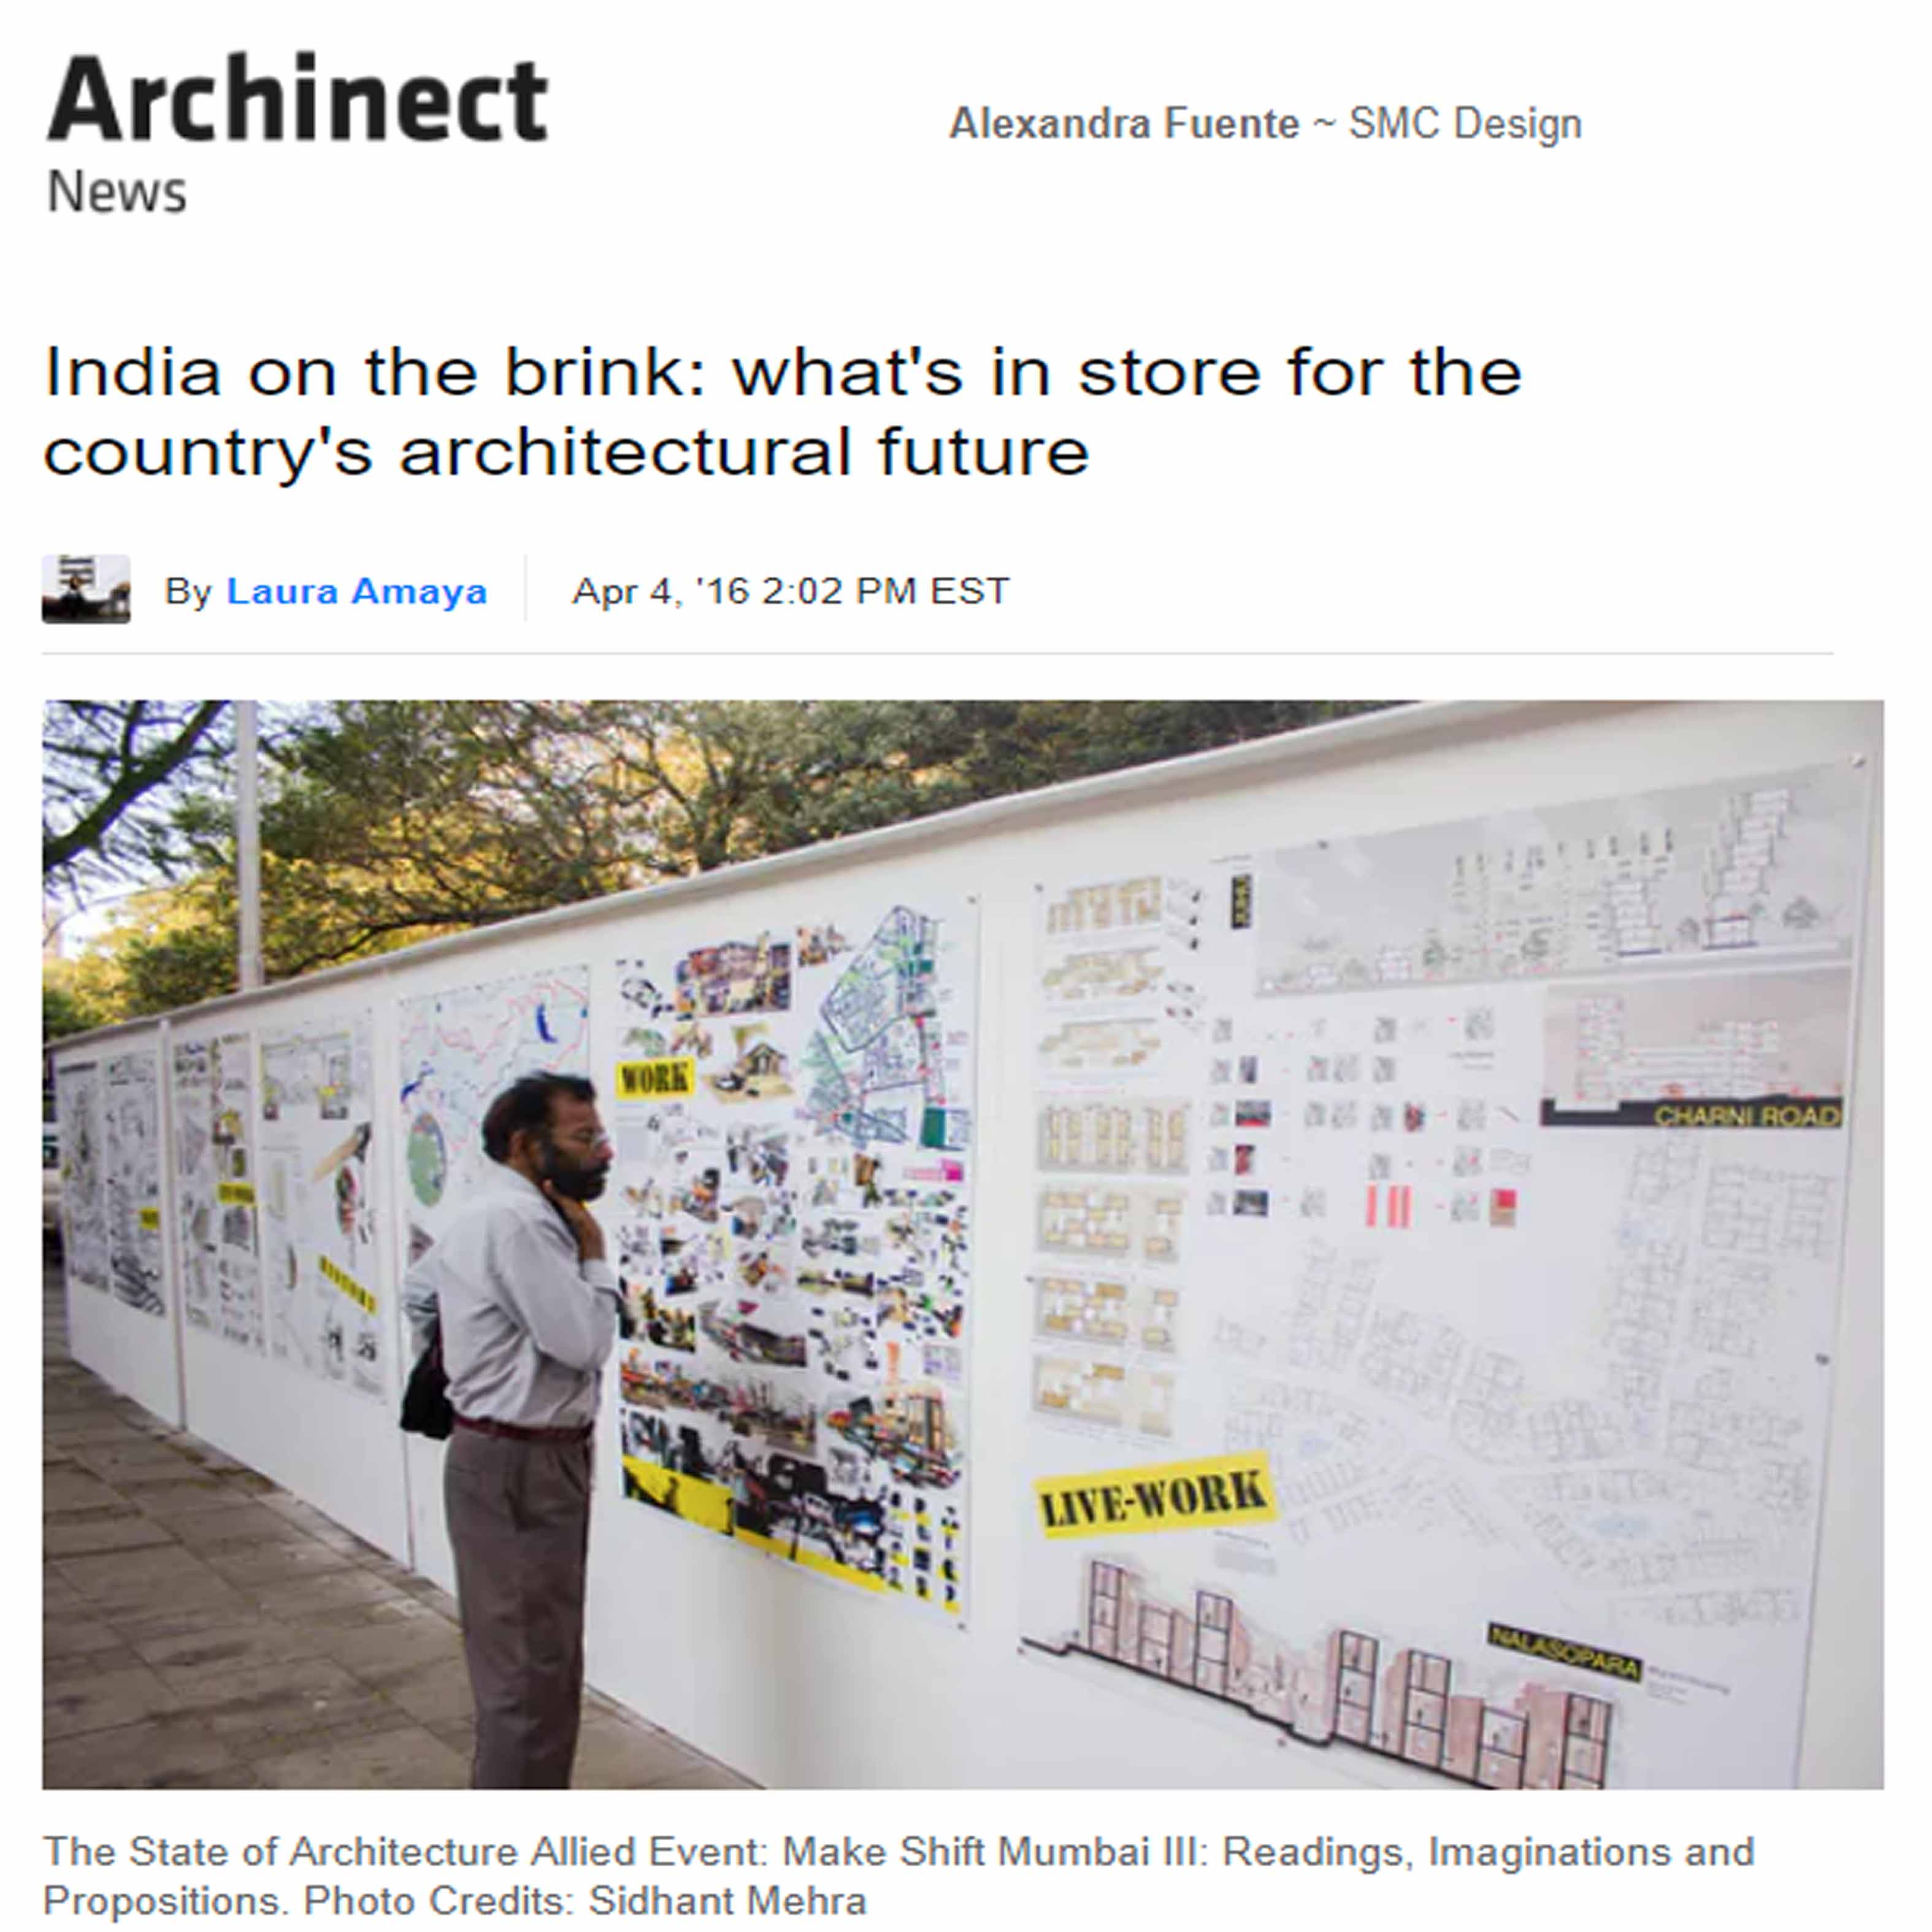 India on the Brink: What's in store for the country's architectural future, Archinect News, 4th April 2016